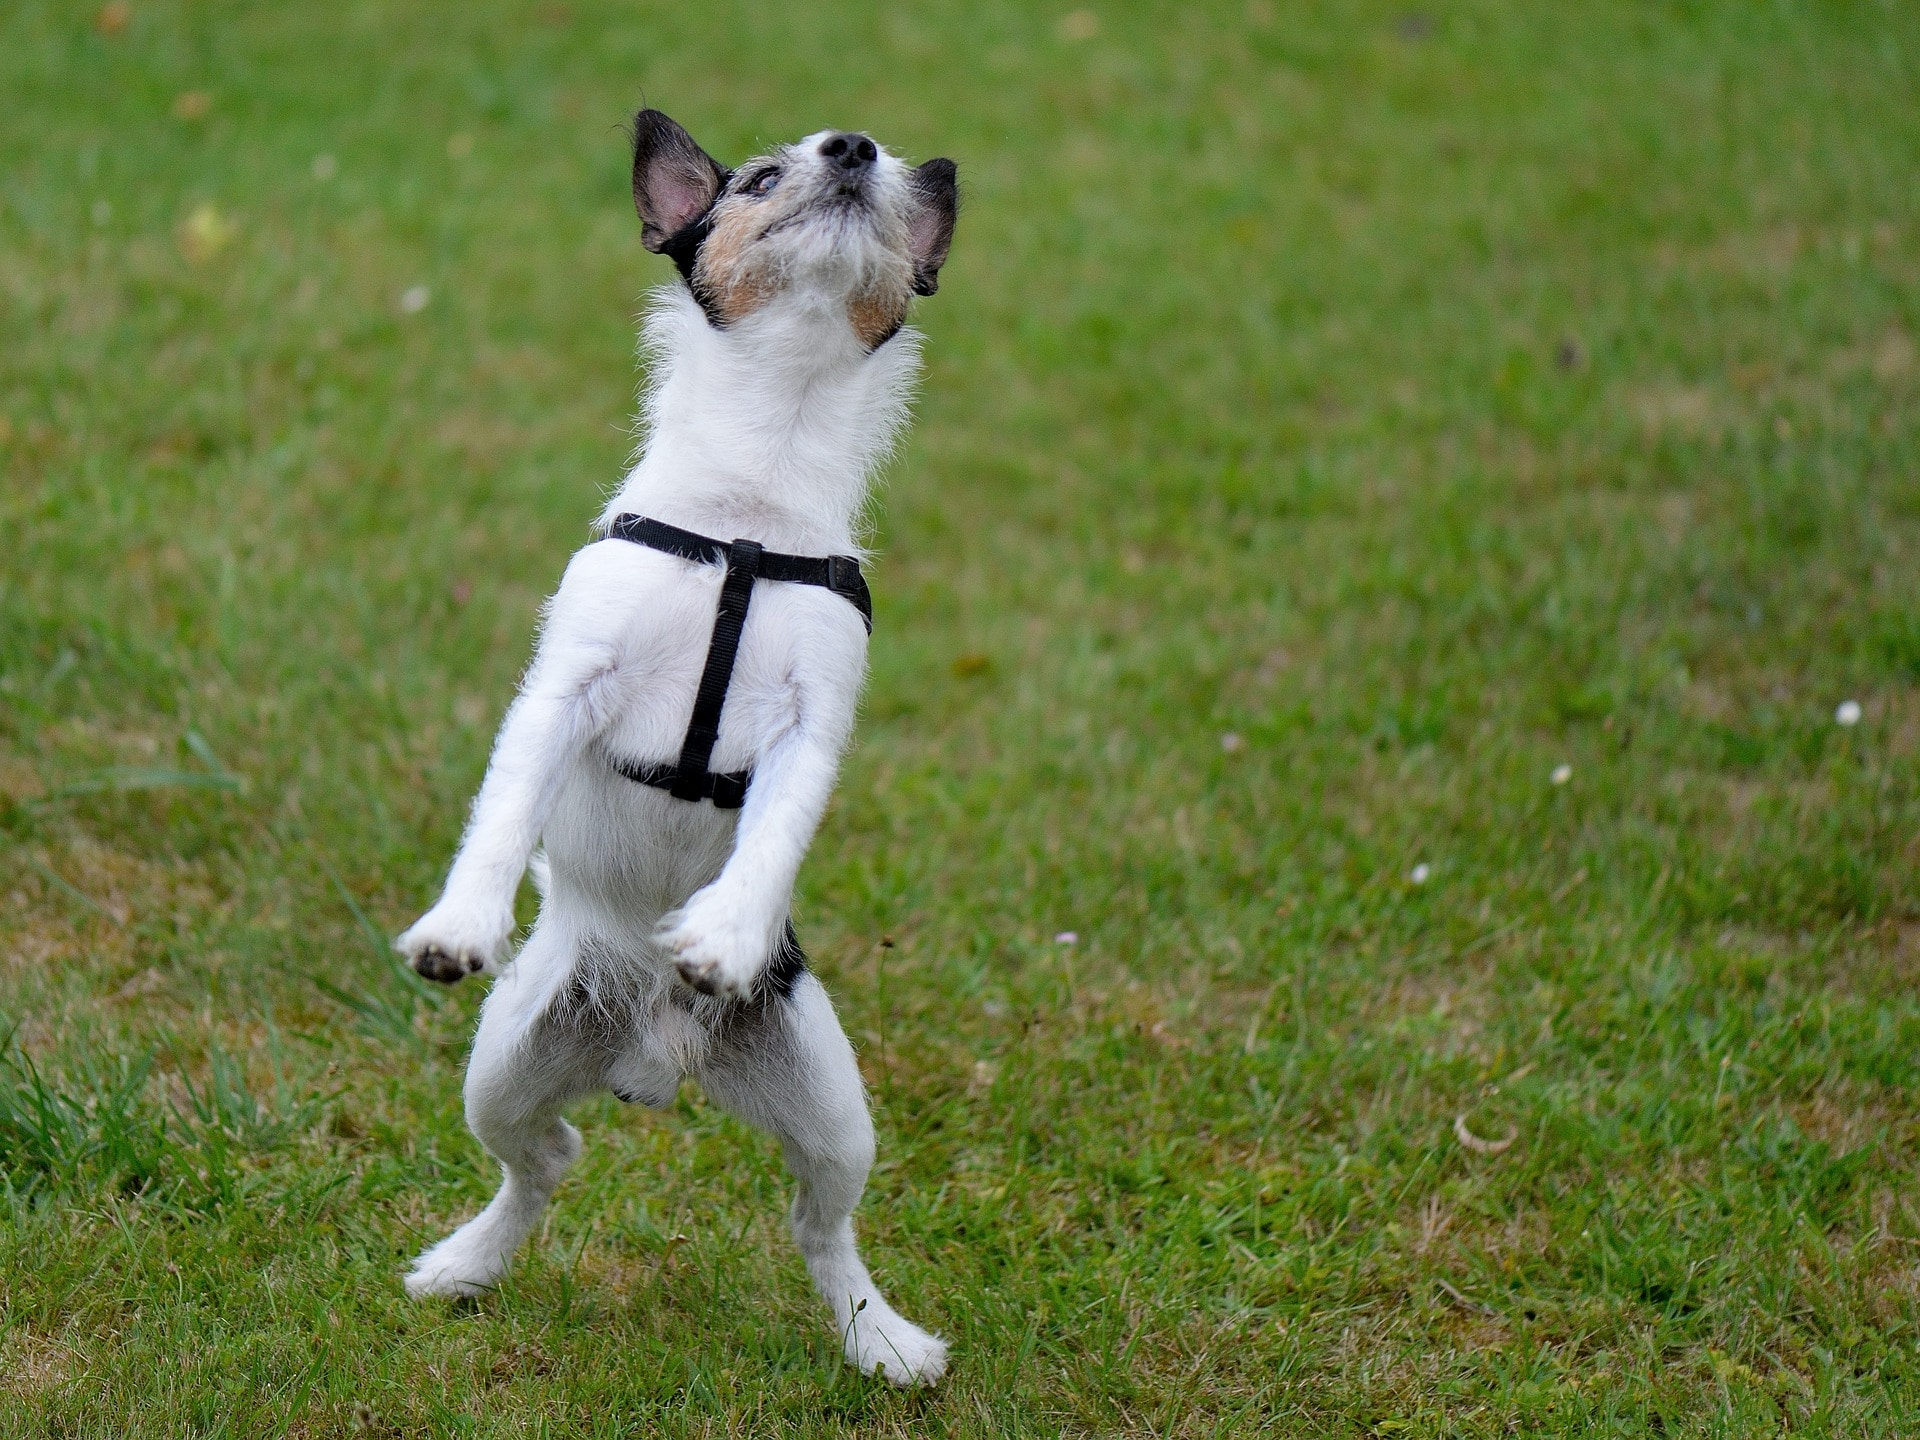 How to Tame Your Jumper Dog: 5 Top Tips